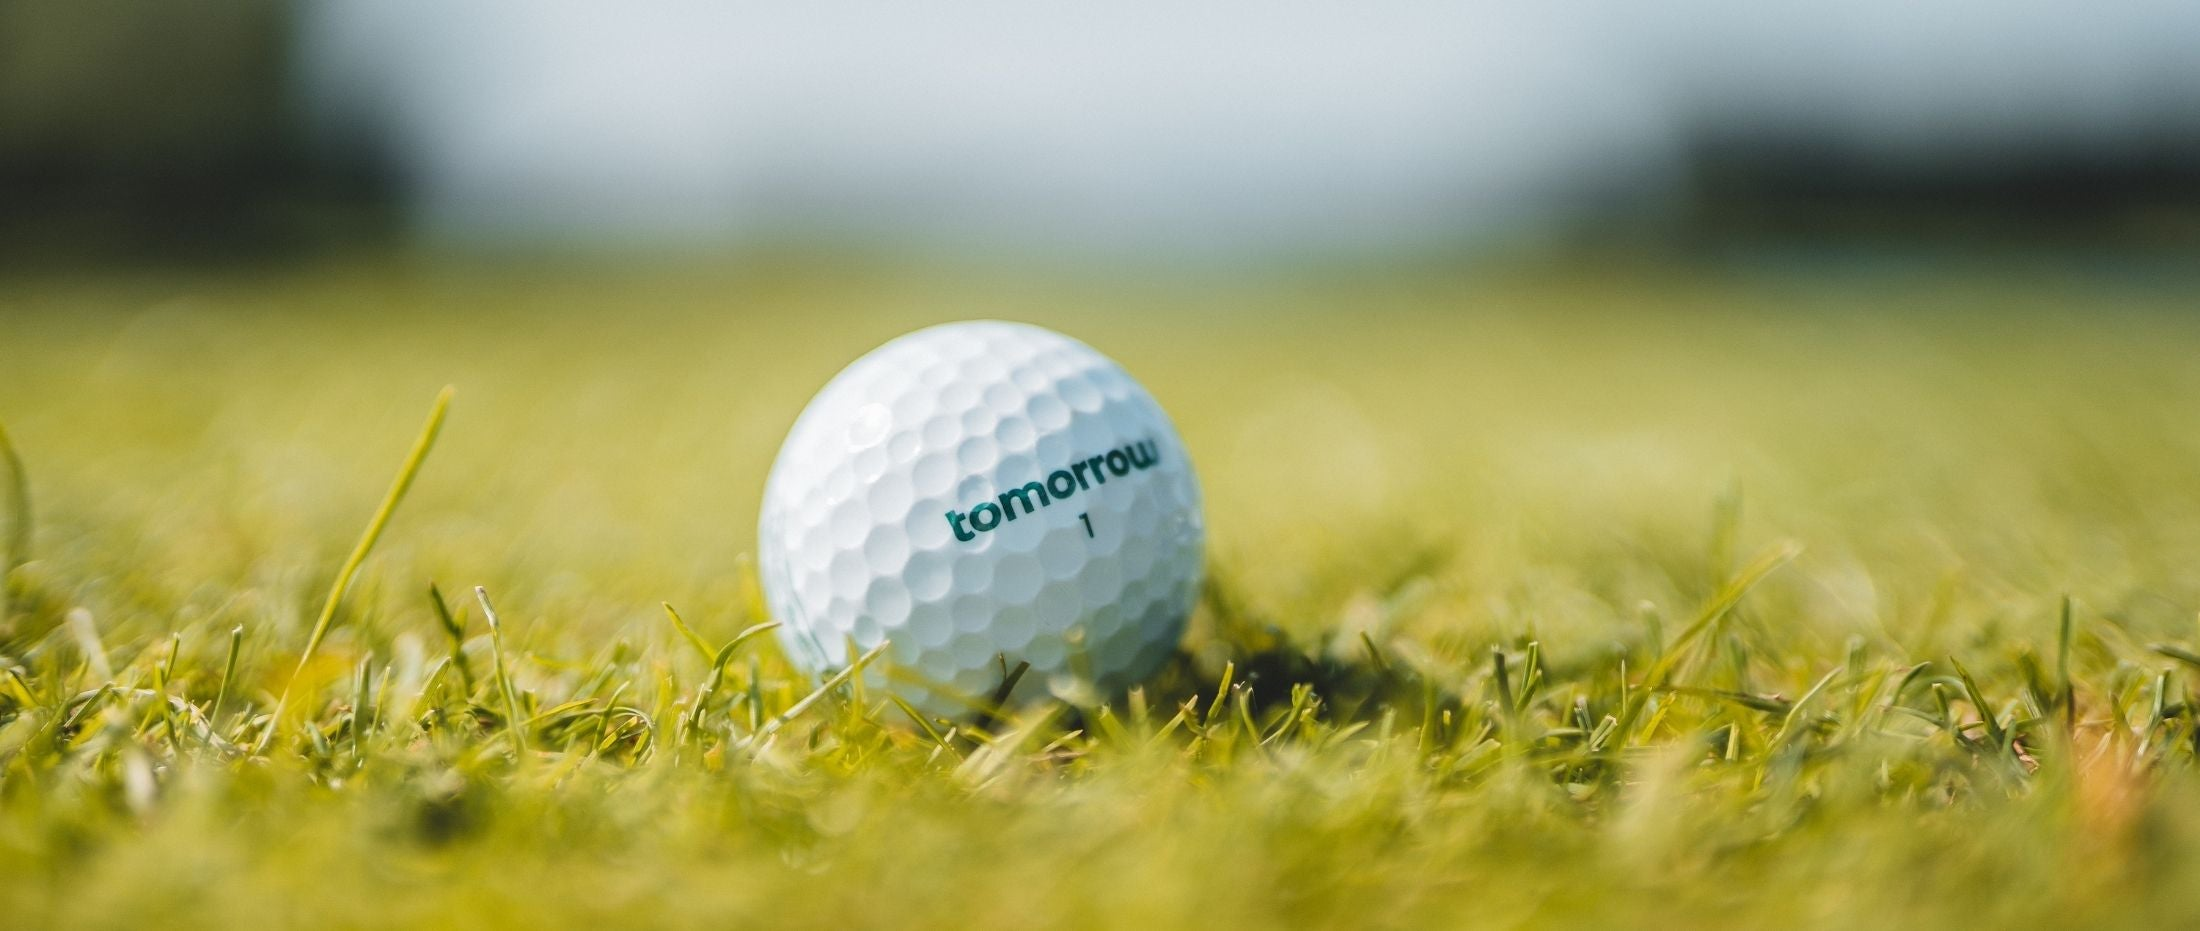 tomorrow golf FAQ frequently asked questions